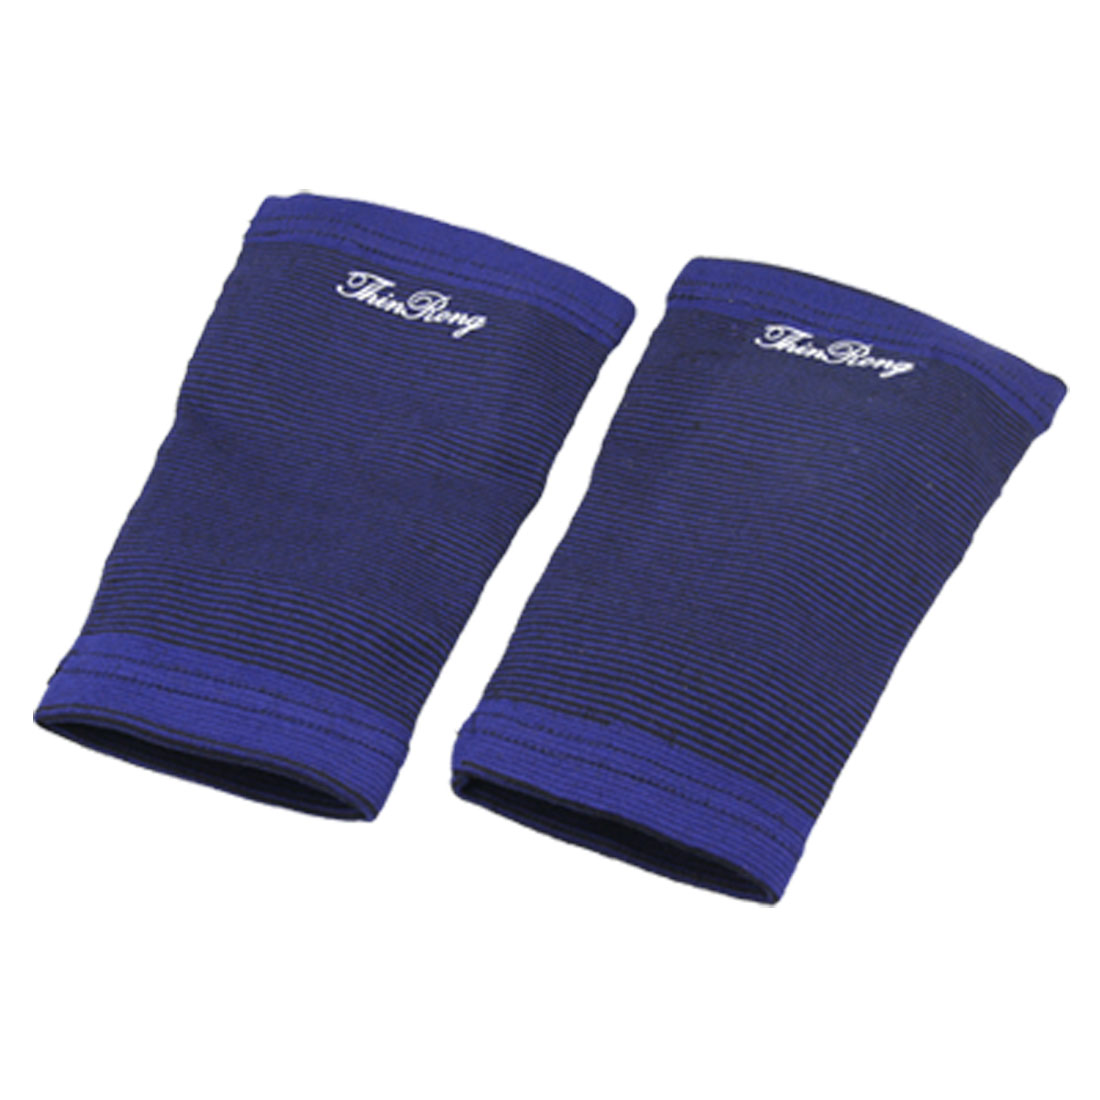 Pair of Black Blue Bar Print Stretch Calf Support Protector